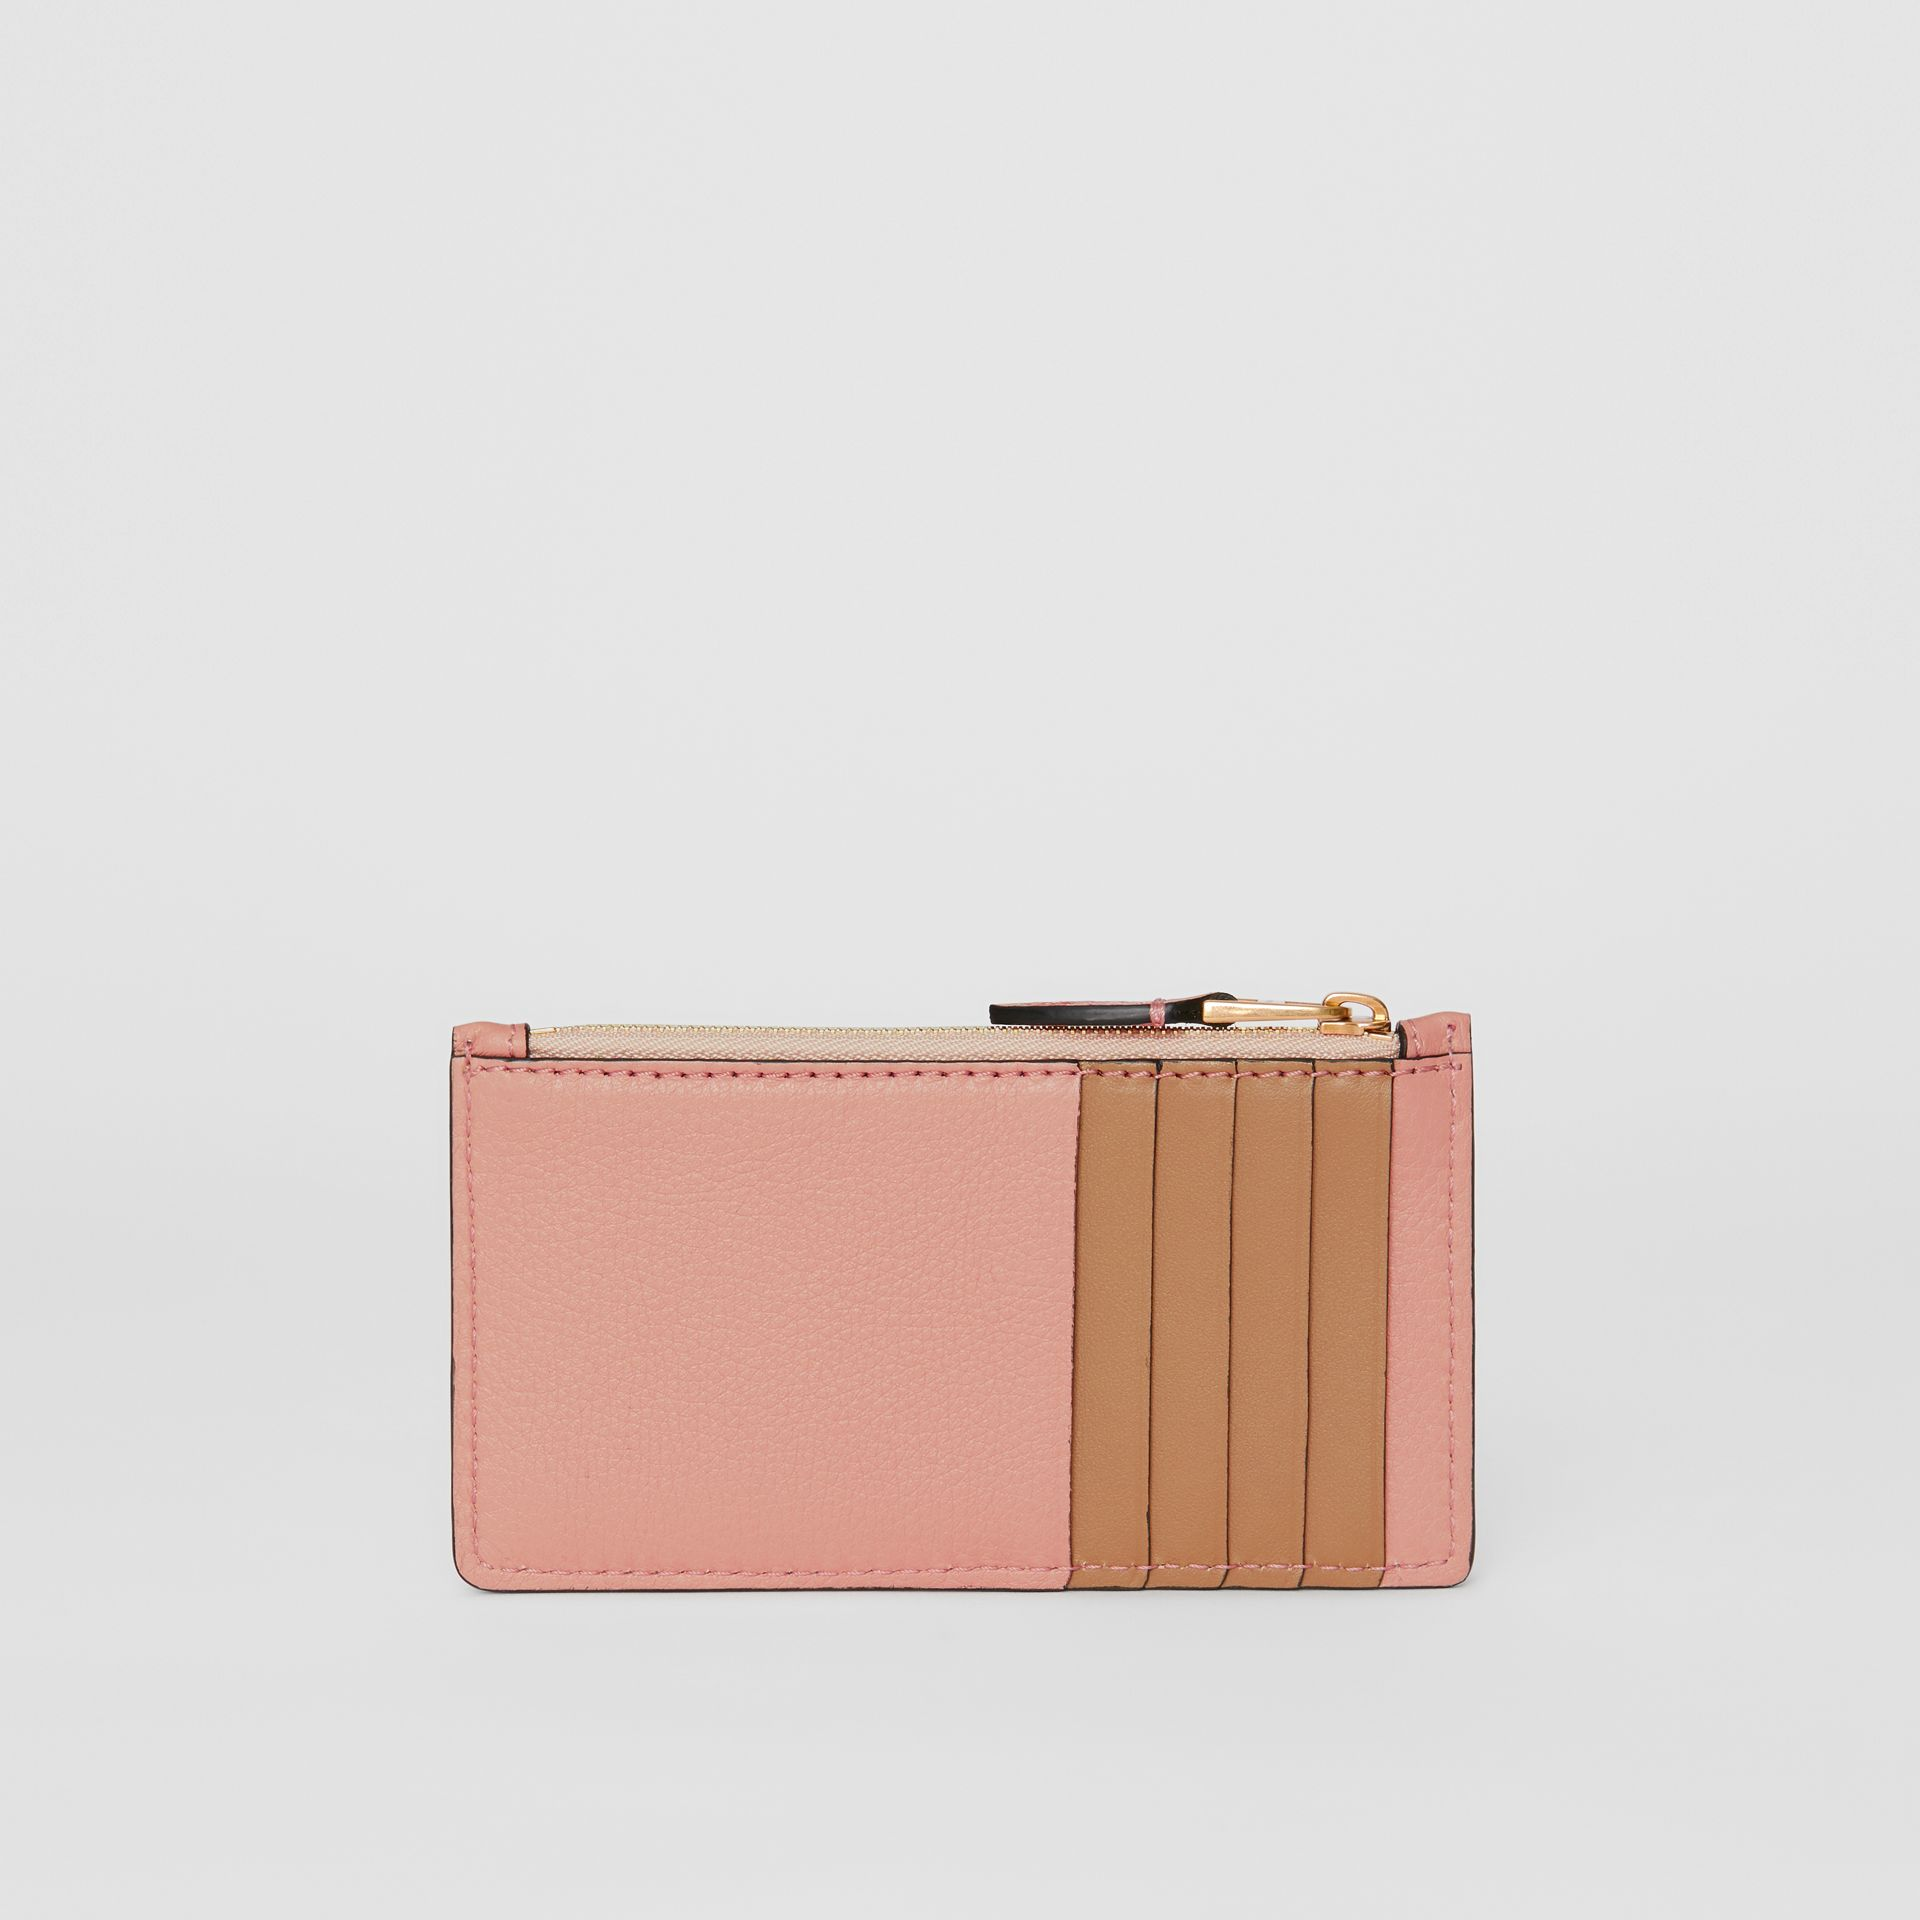 Porte-cartes zippé en cuir bicolore (Rose Platiné) - Femme | Burberry - photo de la galerie 4